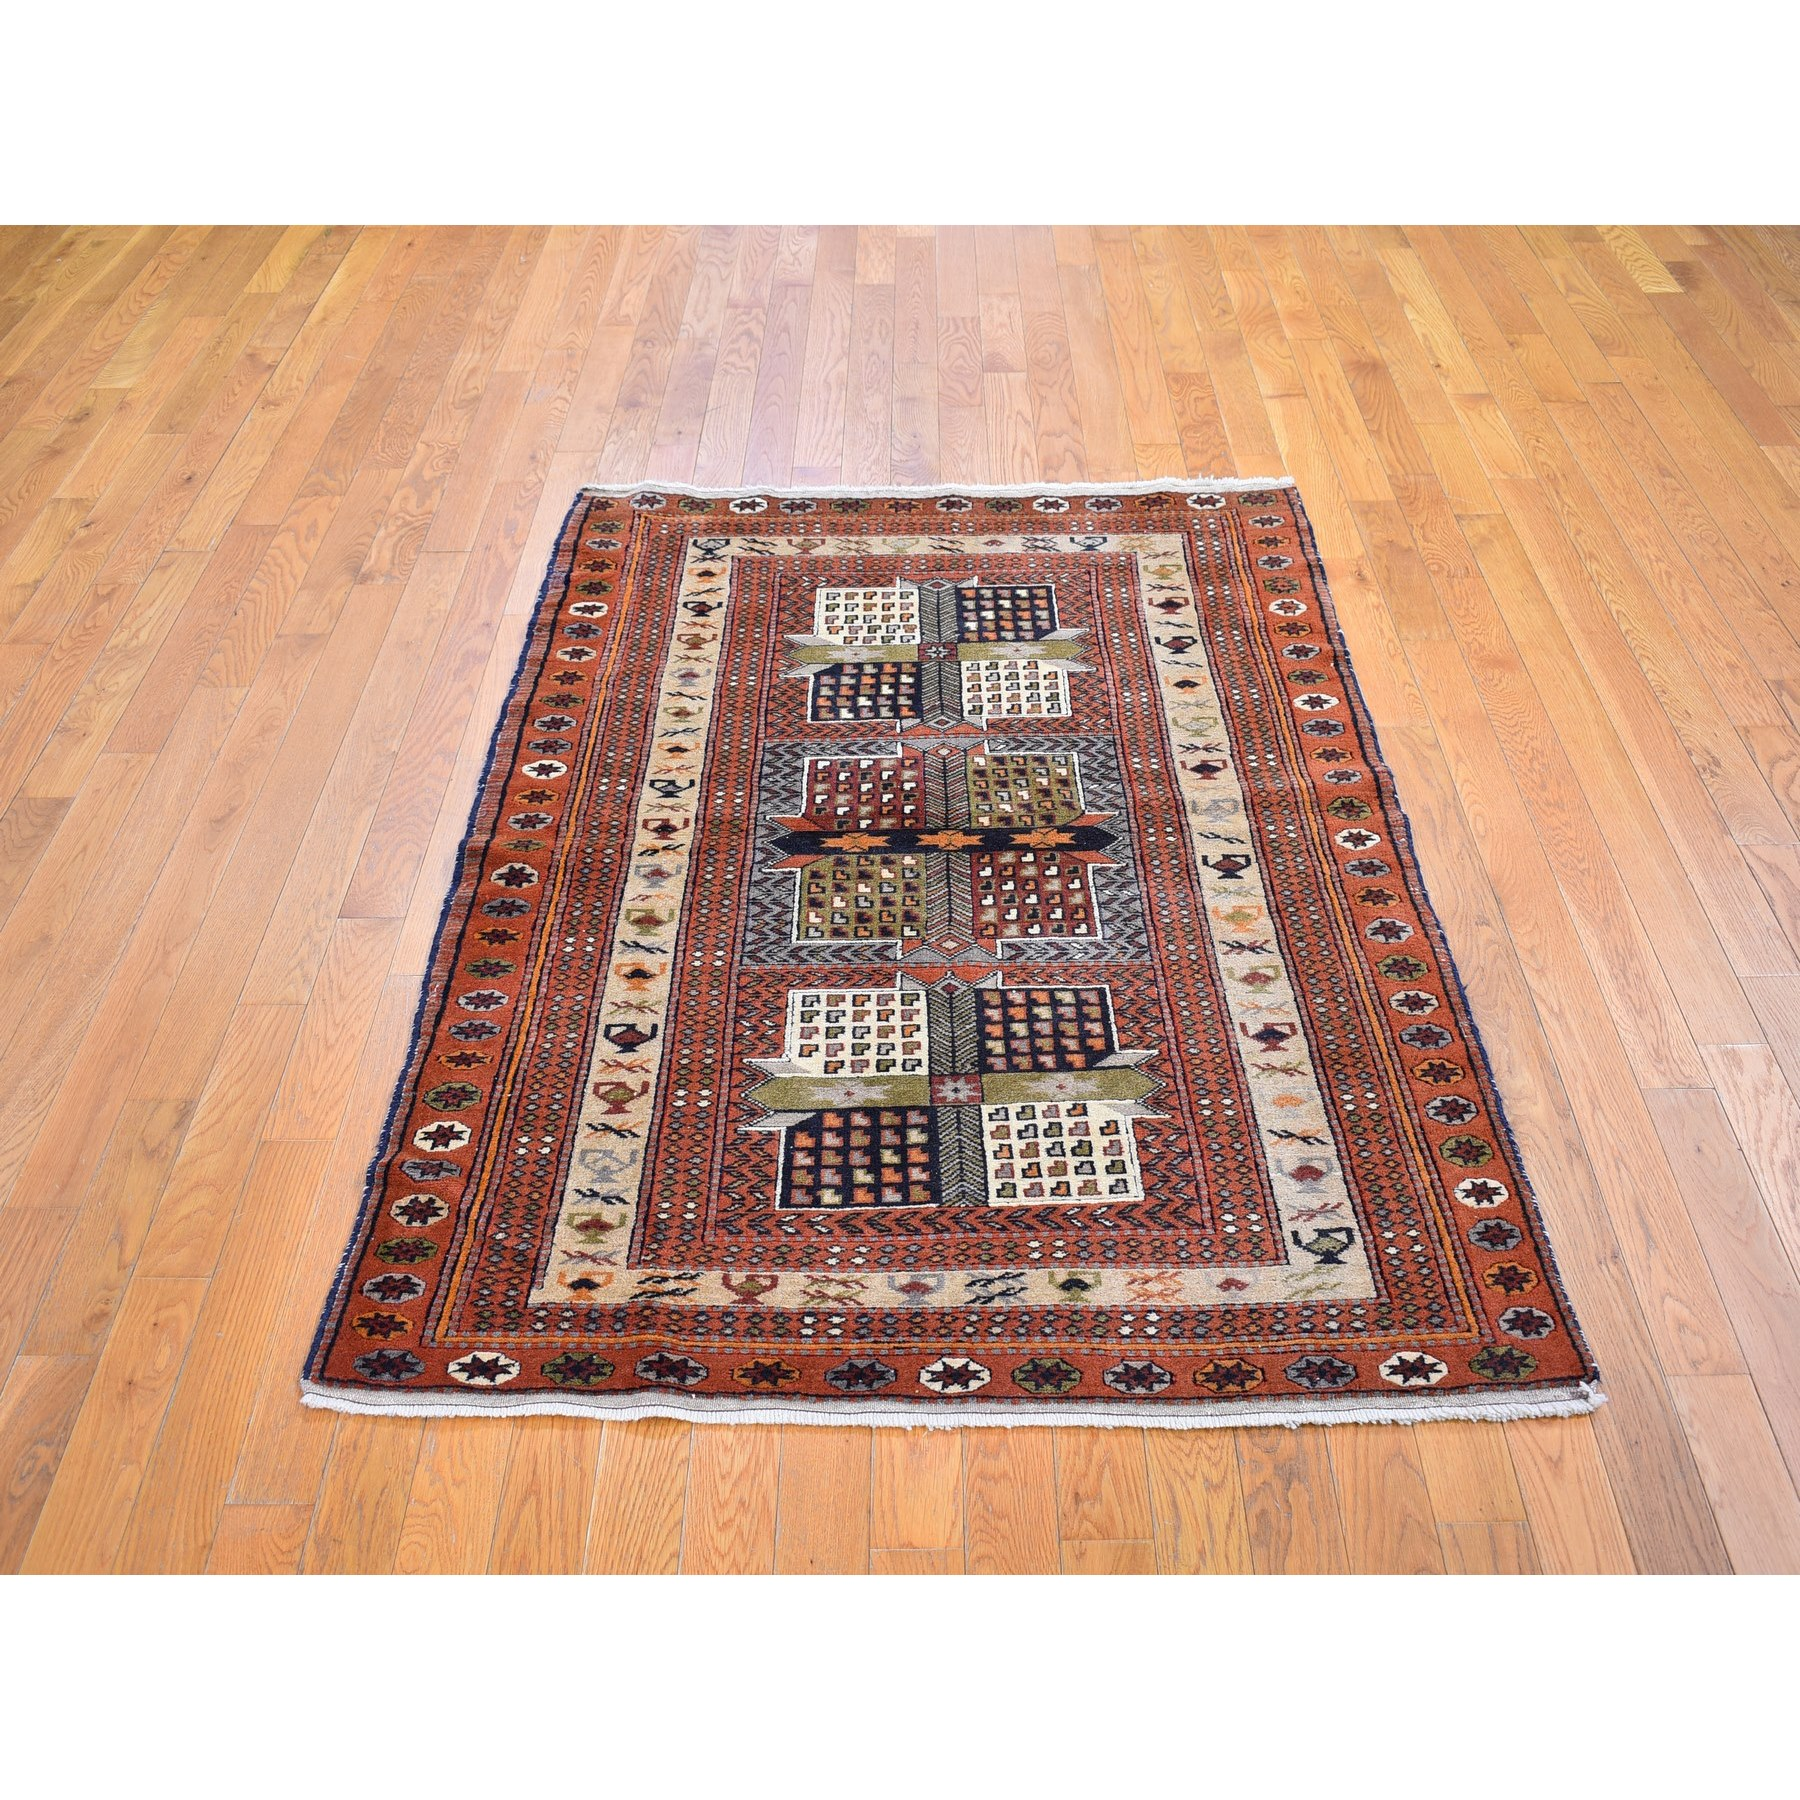 "4'x5'10"" Light Brown Vintage Persian Abadeh with Block Design Hand Knotted Natural Wool Oriental Rug"